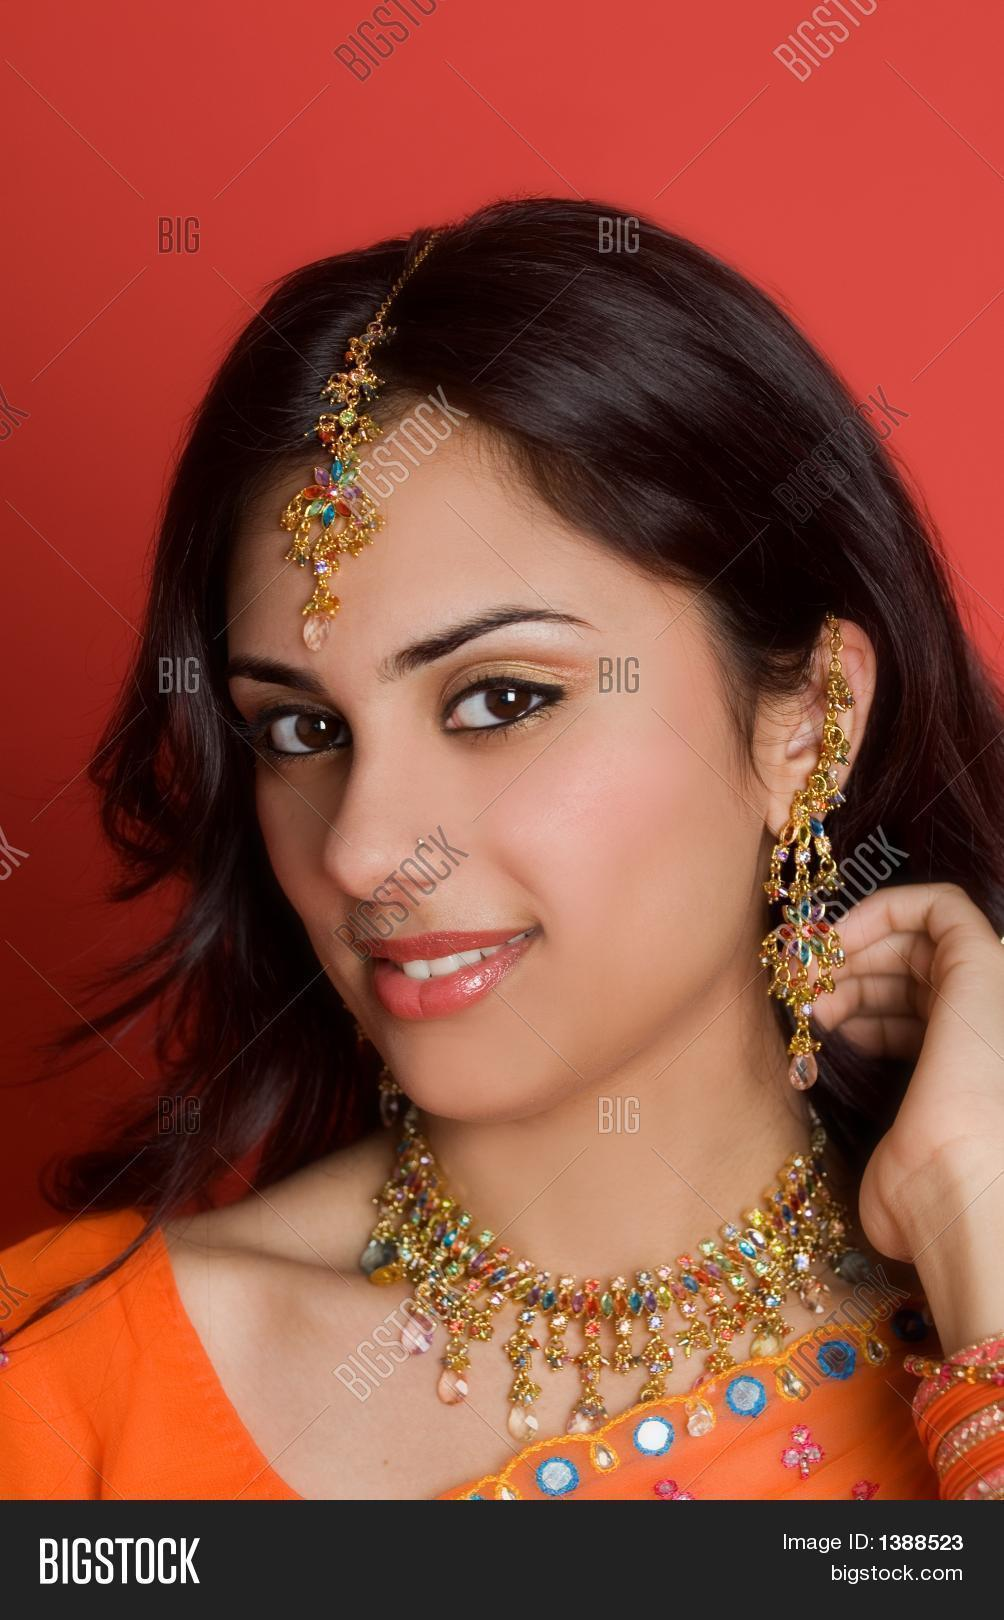 salida hindu single women Salida's best 100% free hindu dating site meet thousands of single hindus in salida with mingle2's free hindu personal ads and chat rooms our network of hindu men and women in salida is the perfect place to make hindu friends or find a hindu boyfriend or girlfriend in salida.